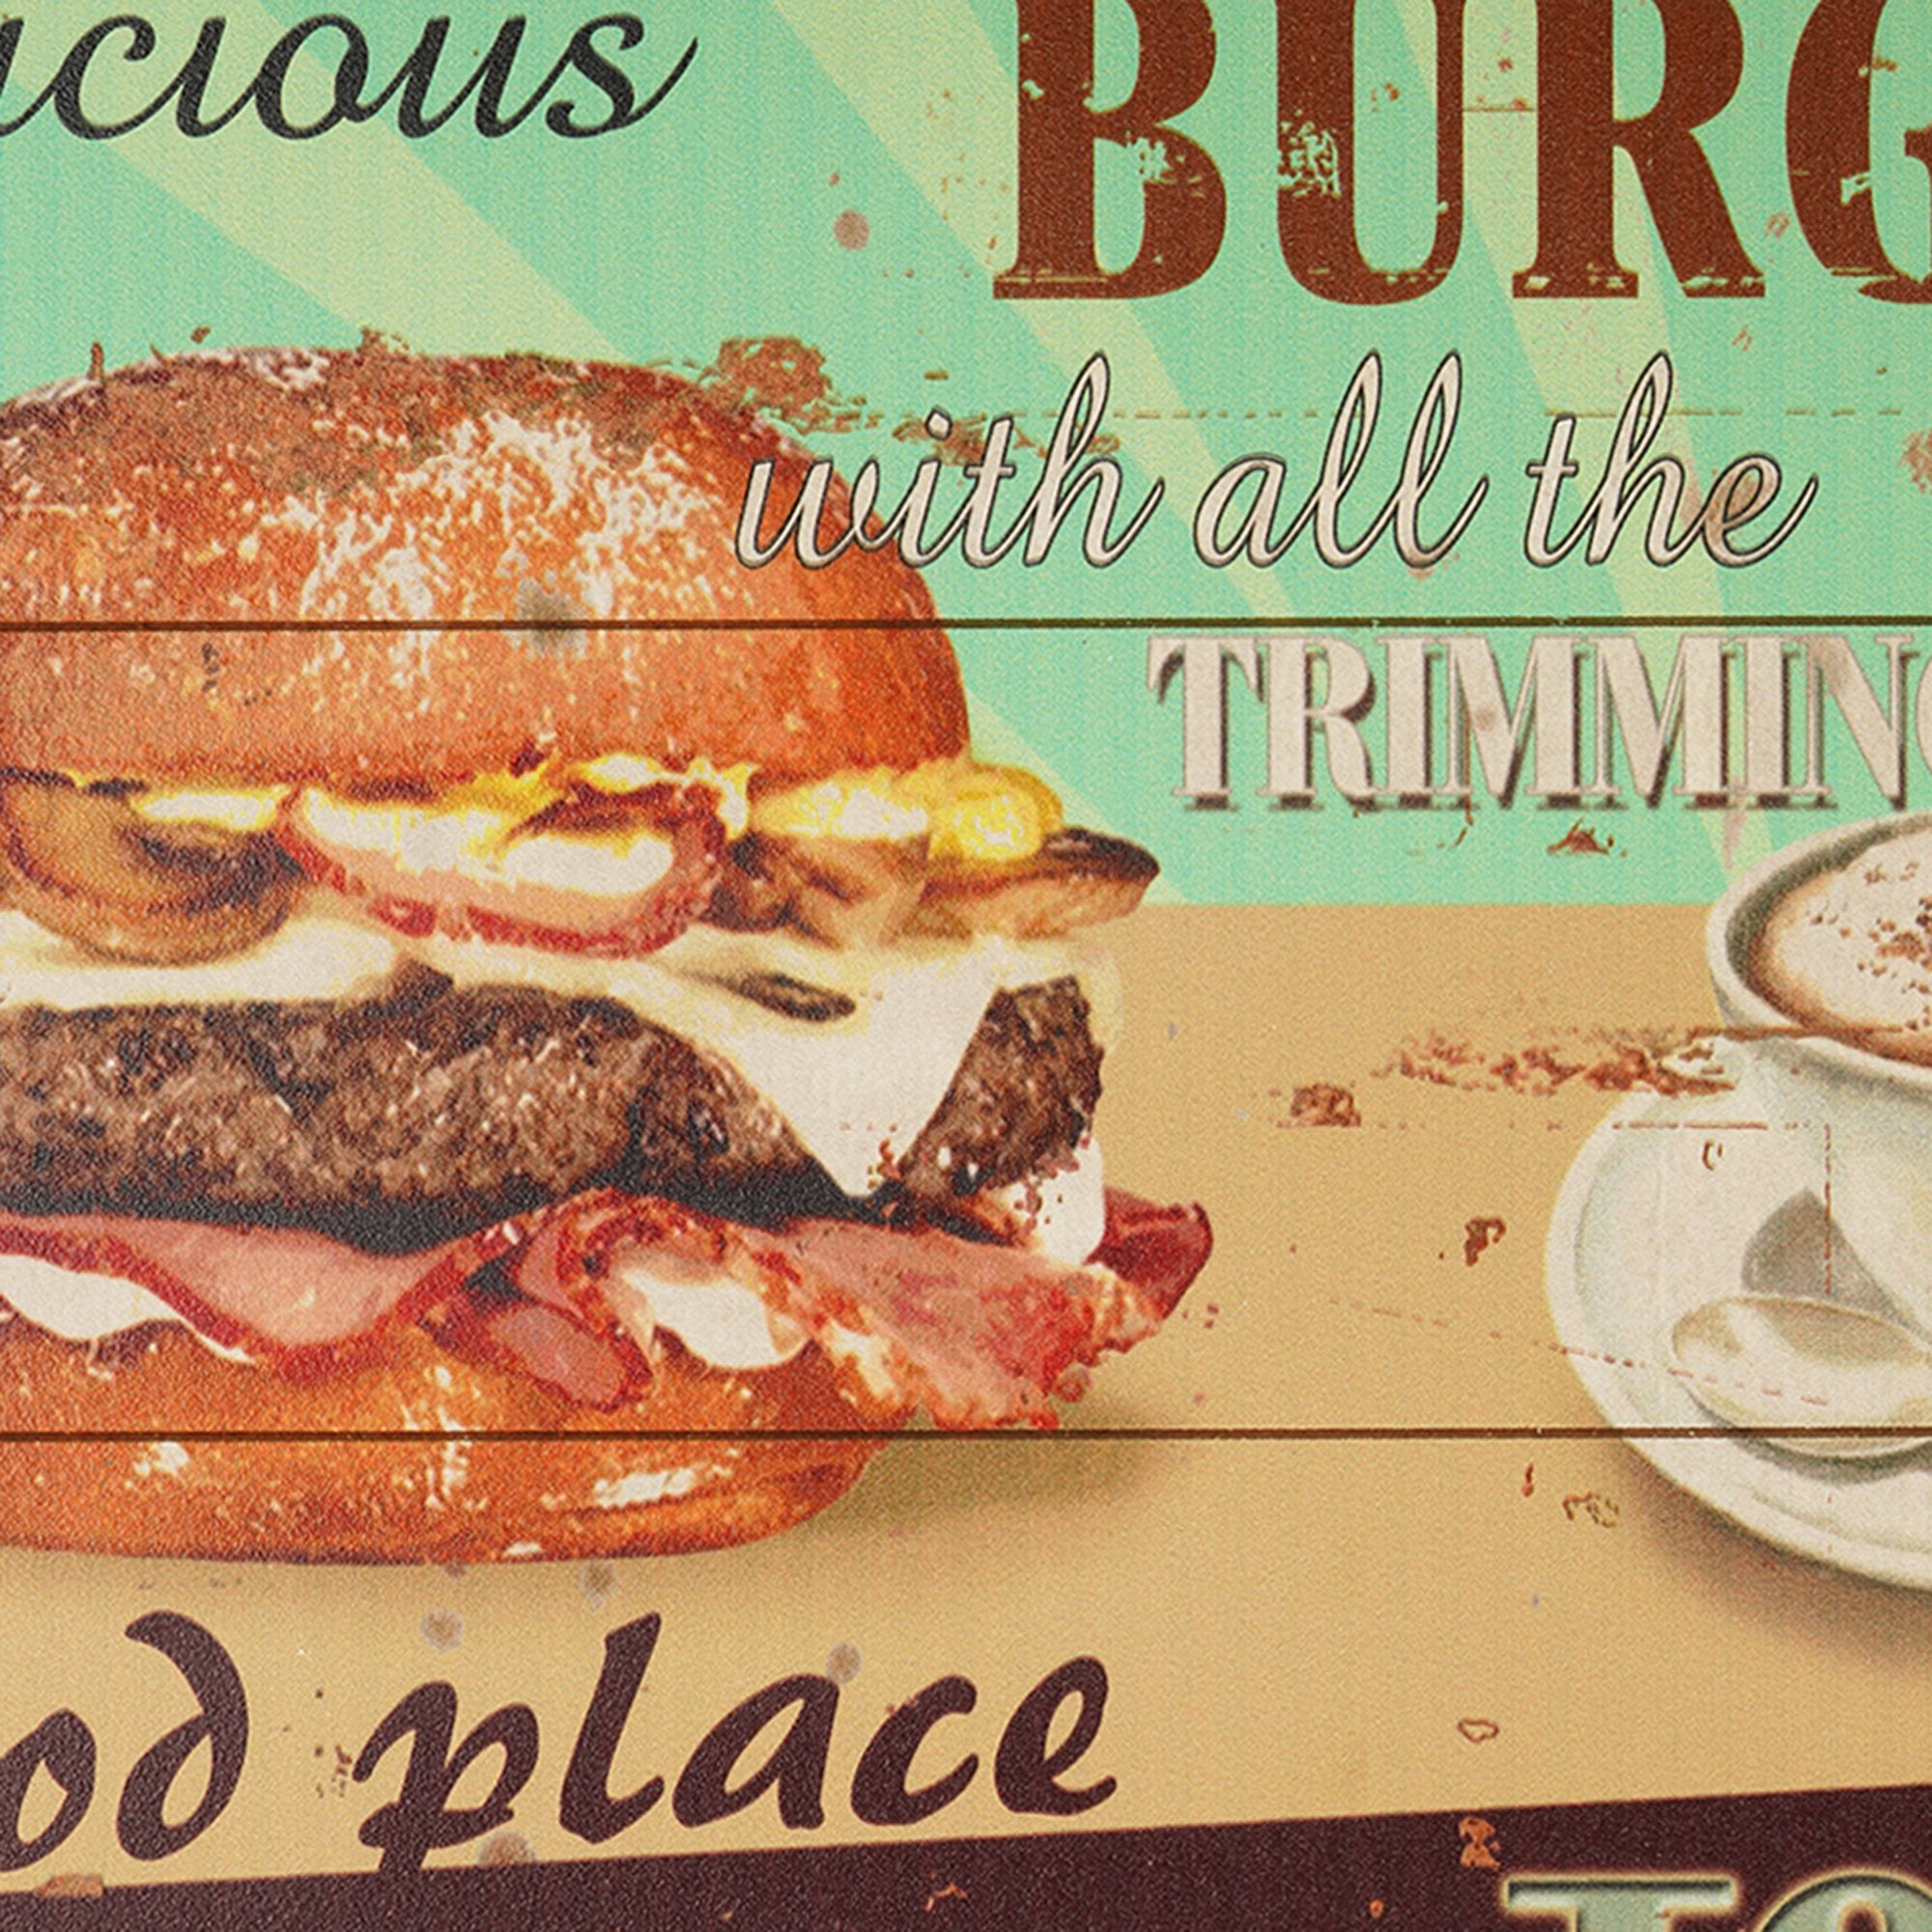 Burger Place Wall Plaque